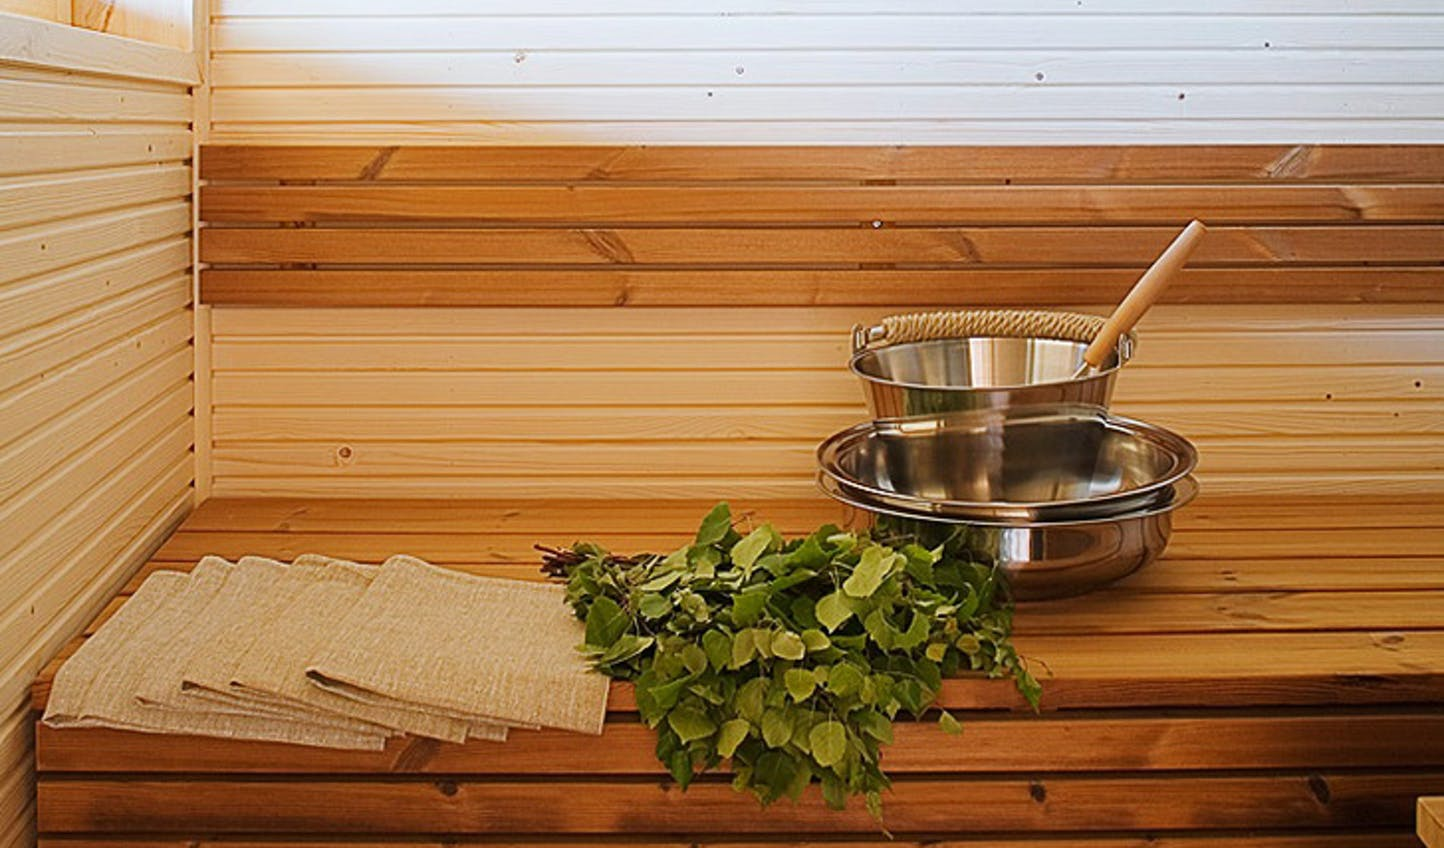 Traditional saunas in Finland